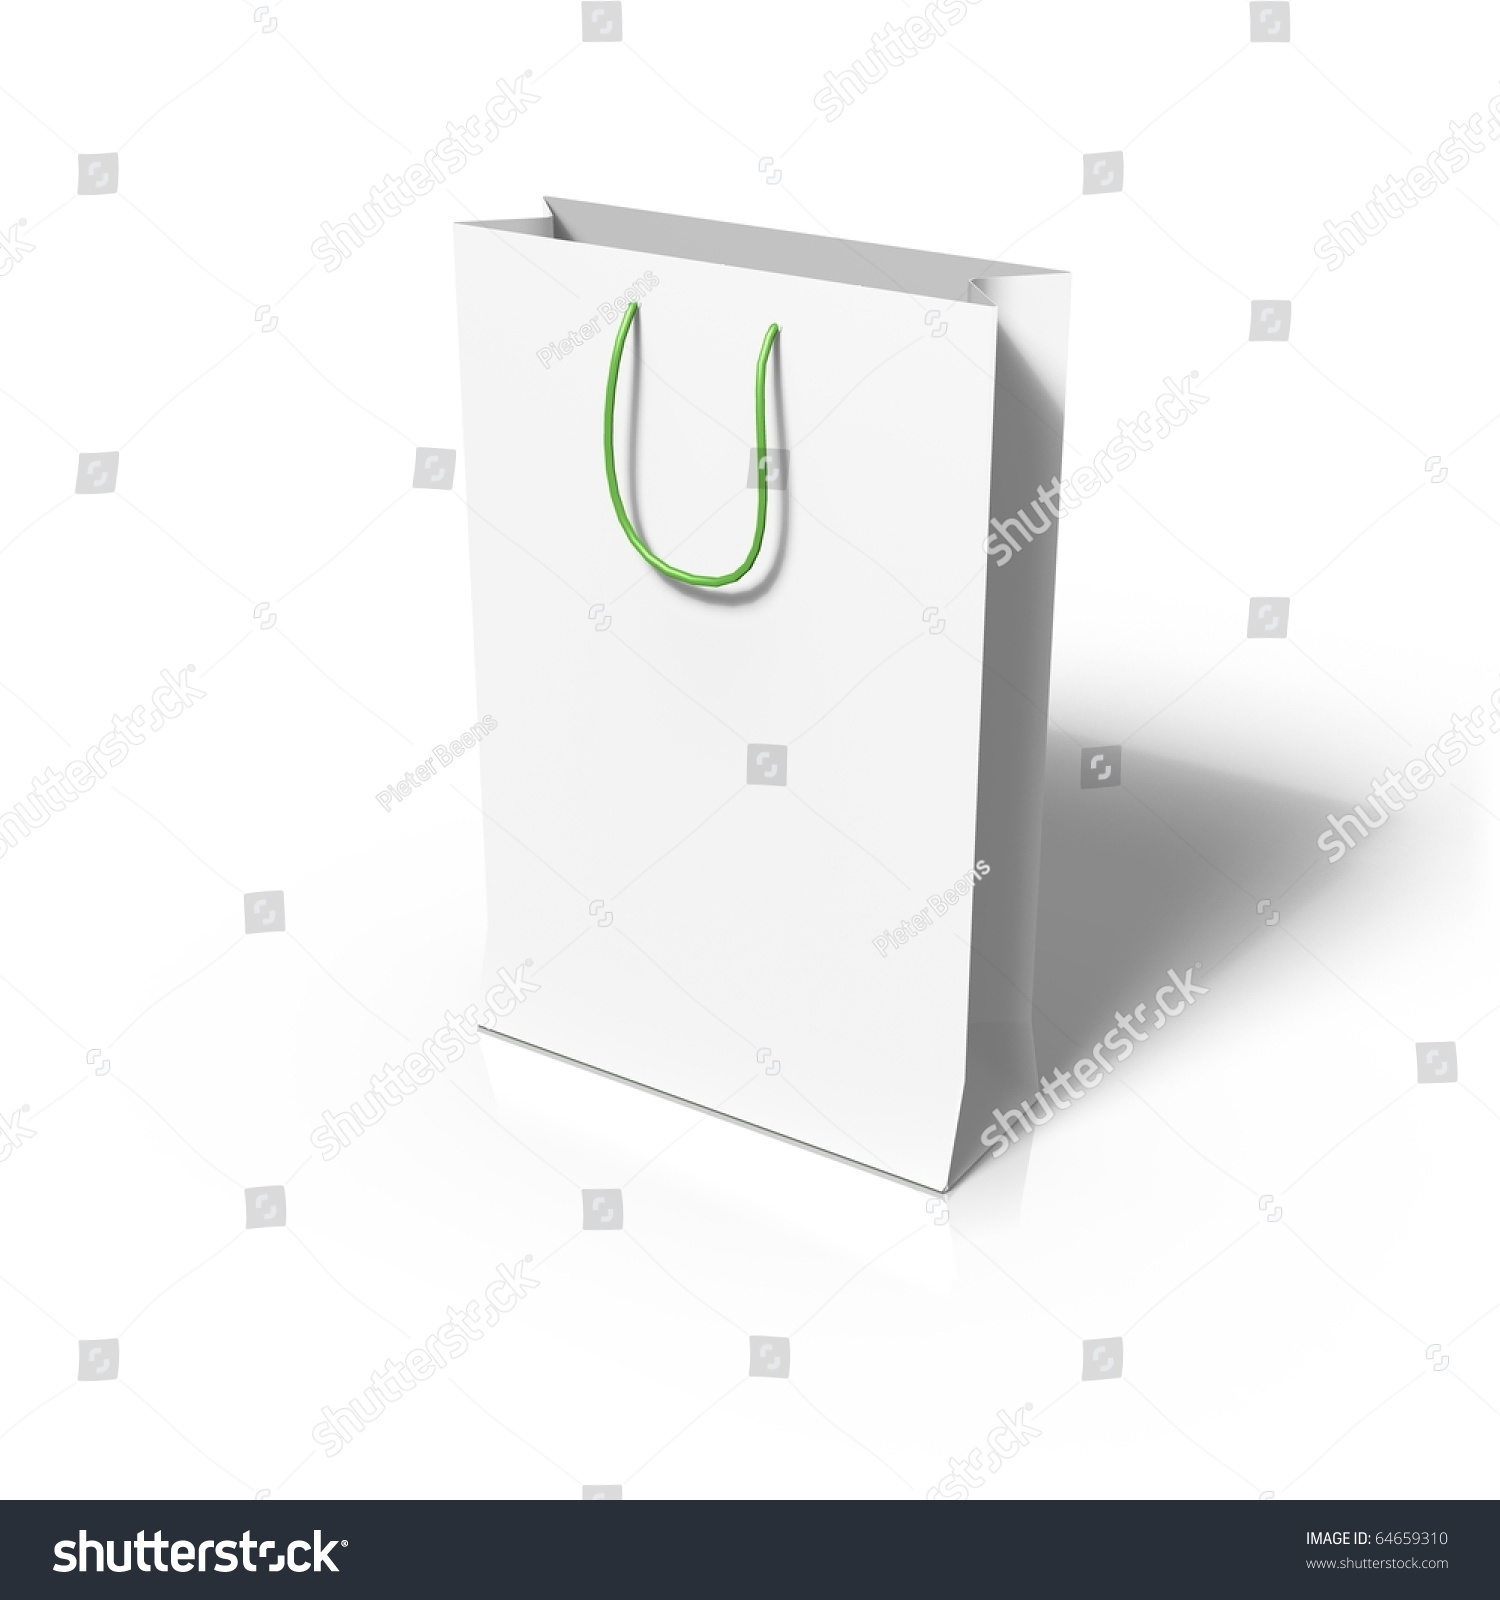 3d render of blank paper bag template stock photo 64659310 shutterstock. Black Bedroom Furniture Sets. Home Design Ideas